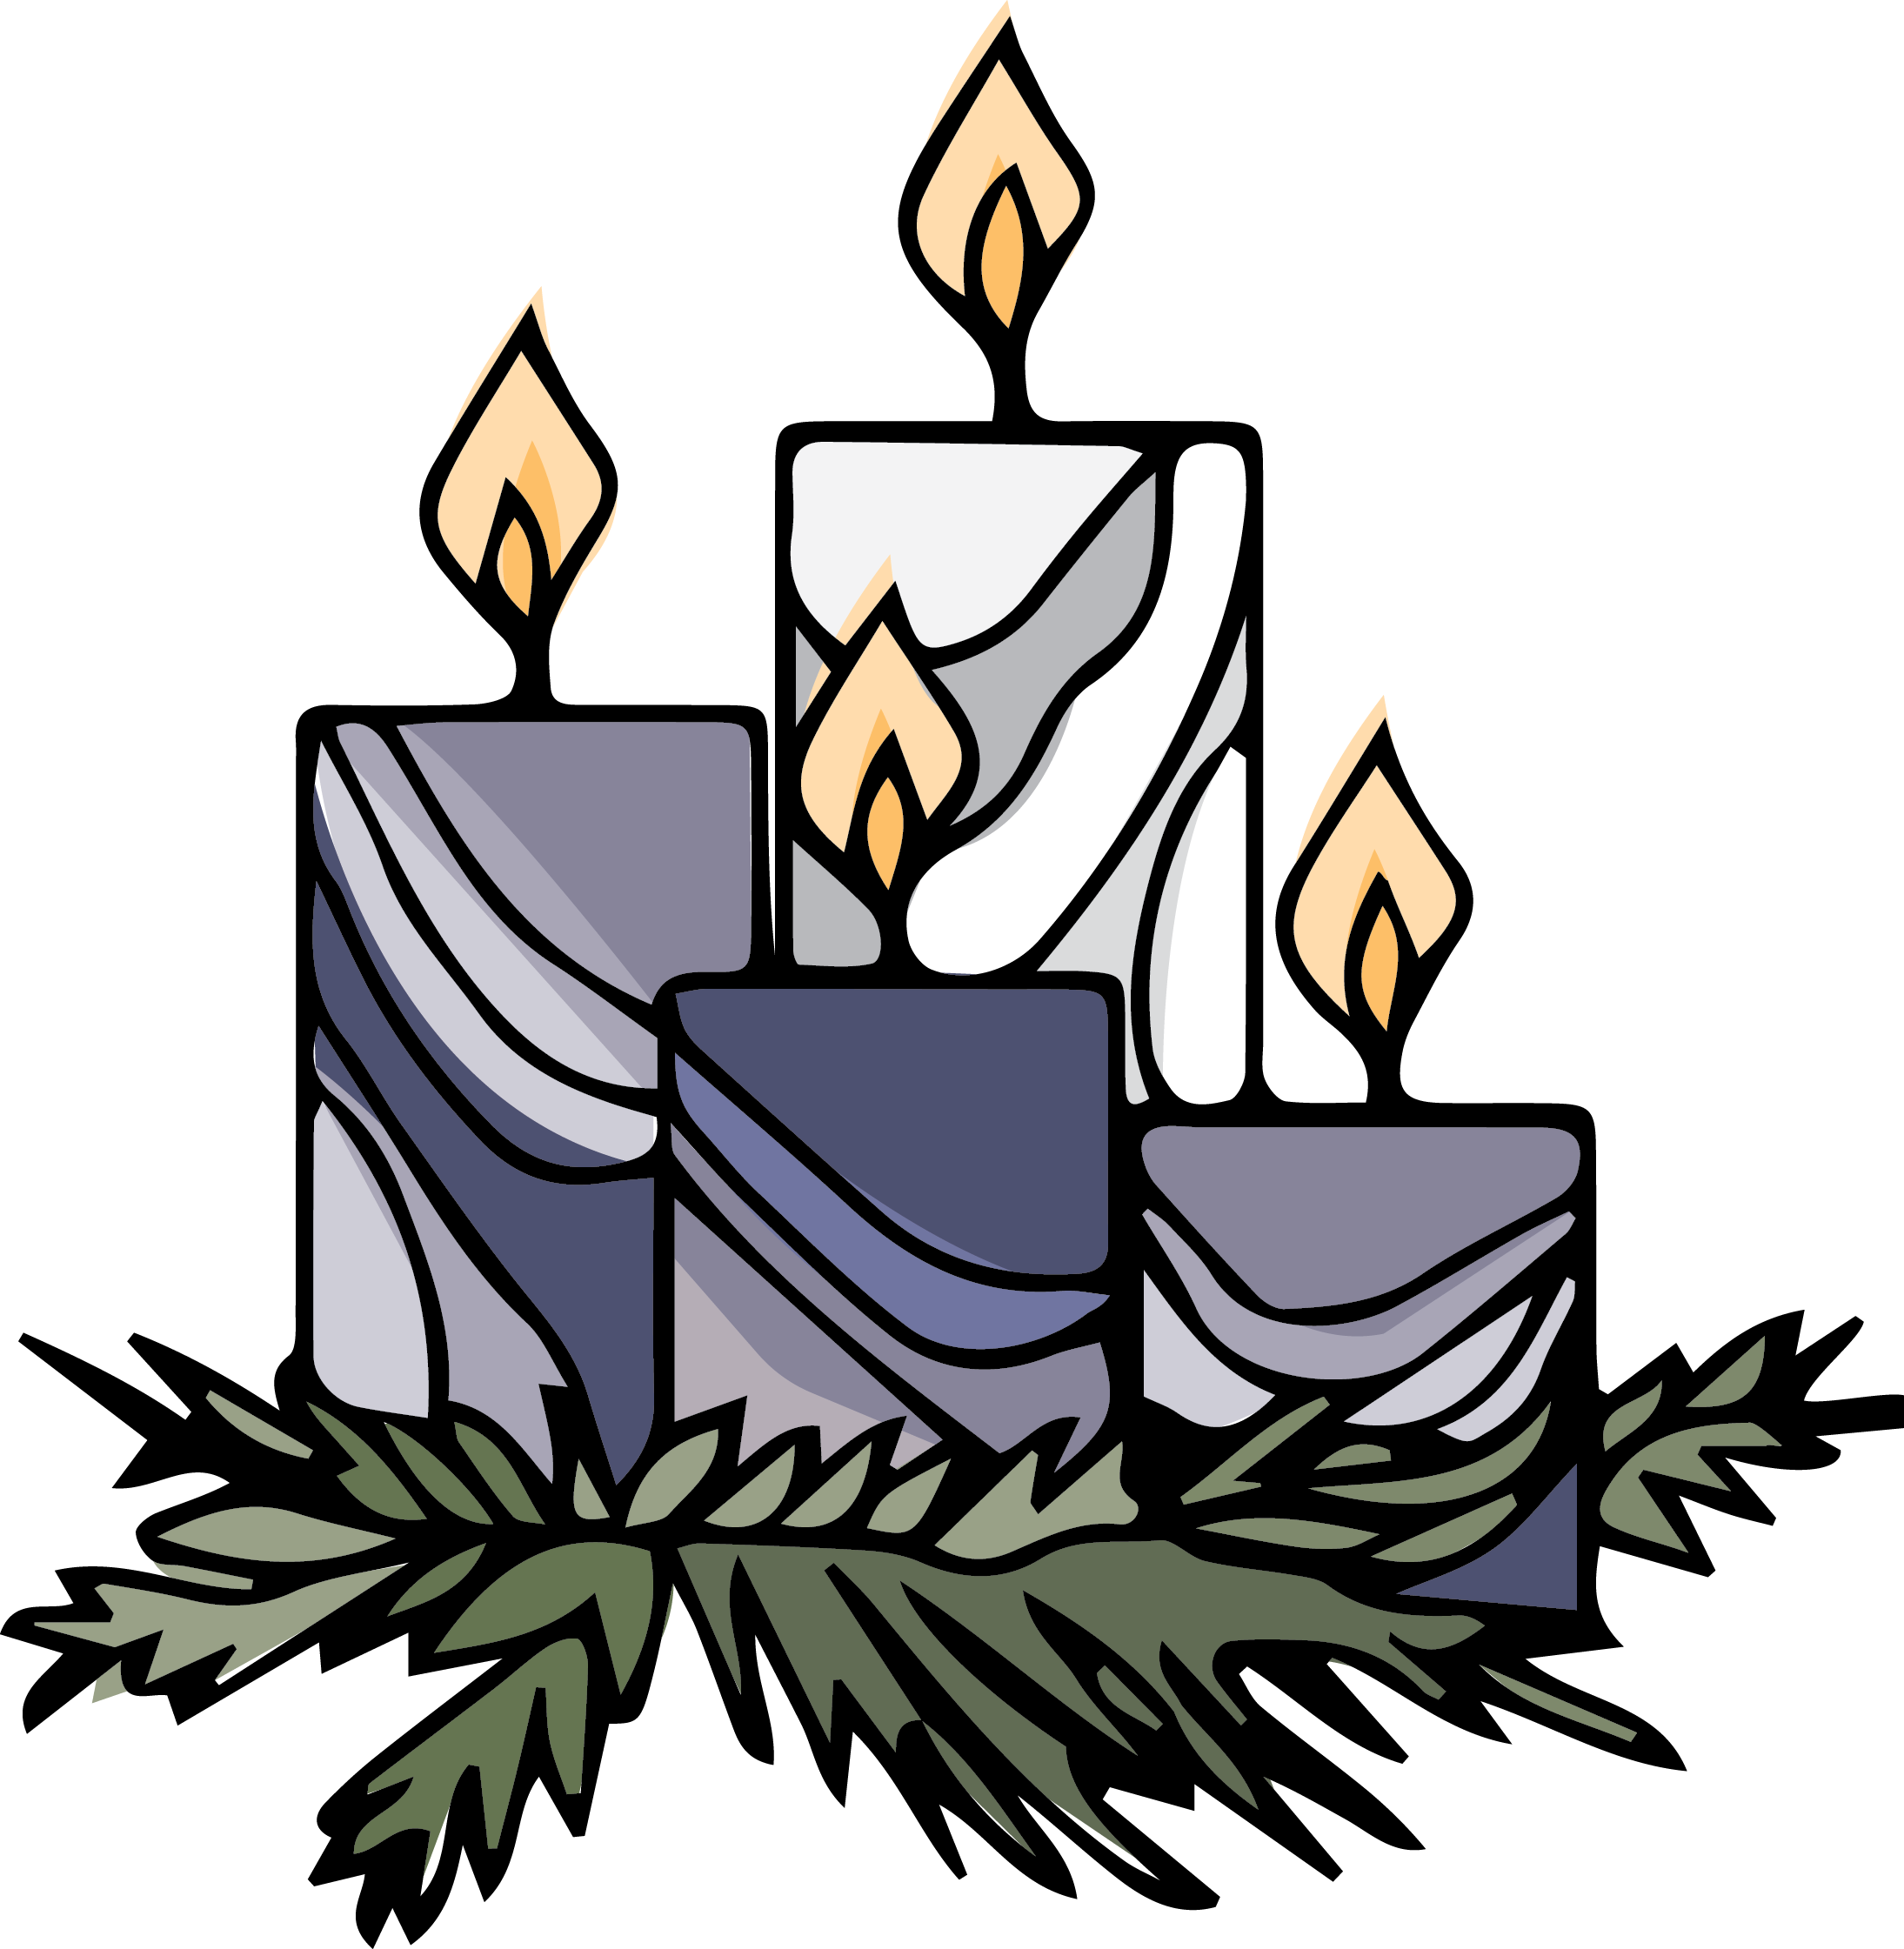 Advent adventcandles. Receptionist clipart office stress